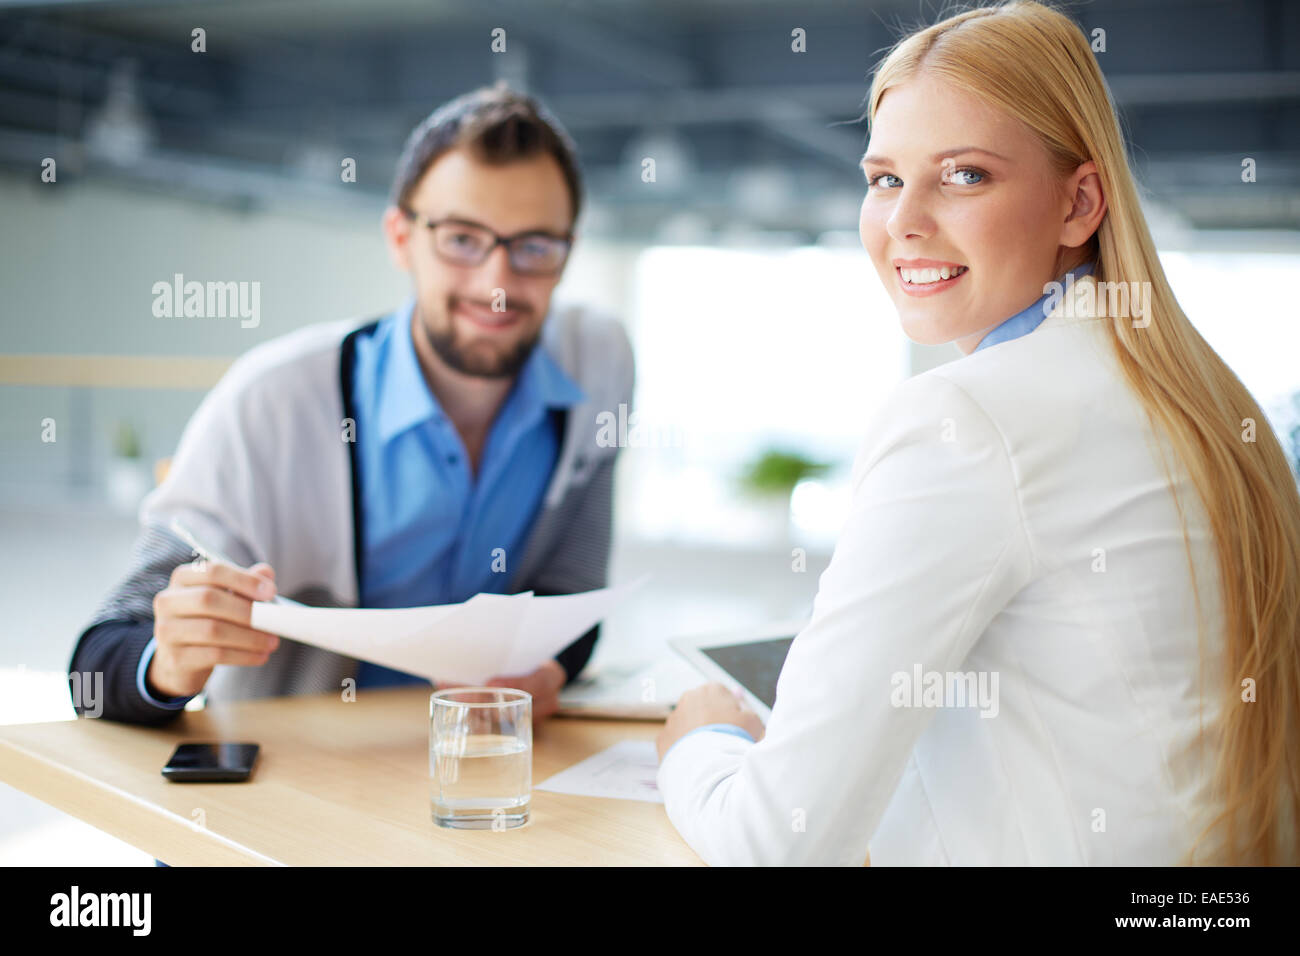 Friendly businesswoman looking at camera with her co-worker on background - Stock Image